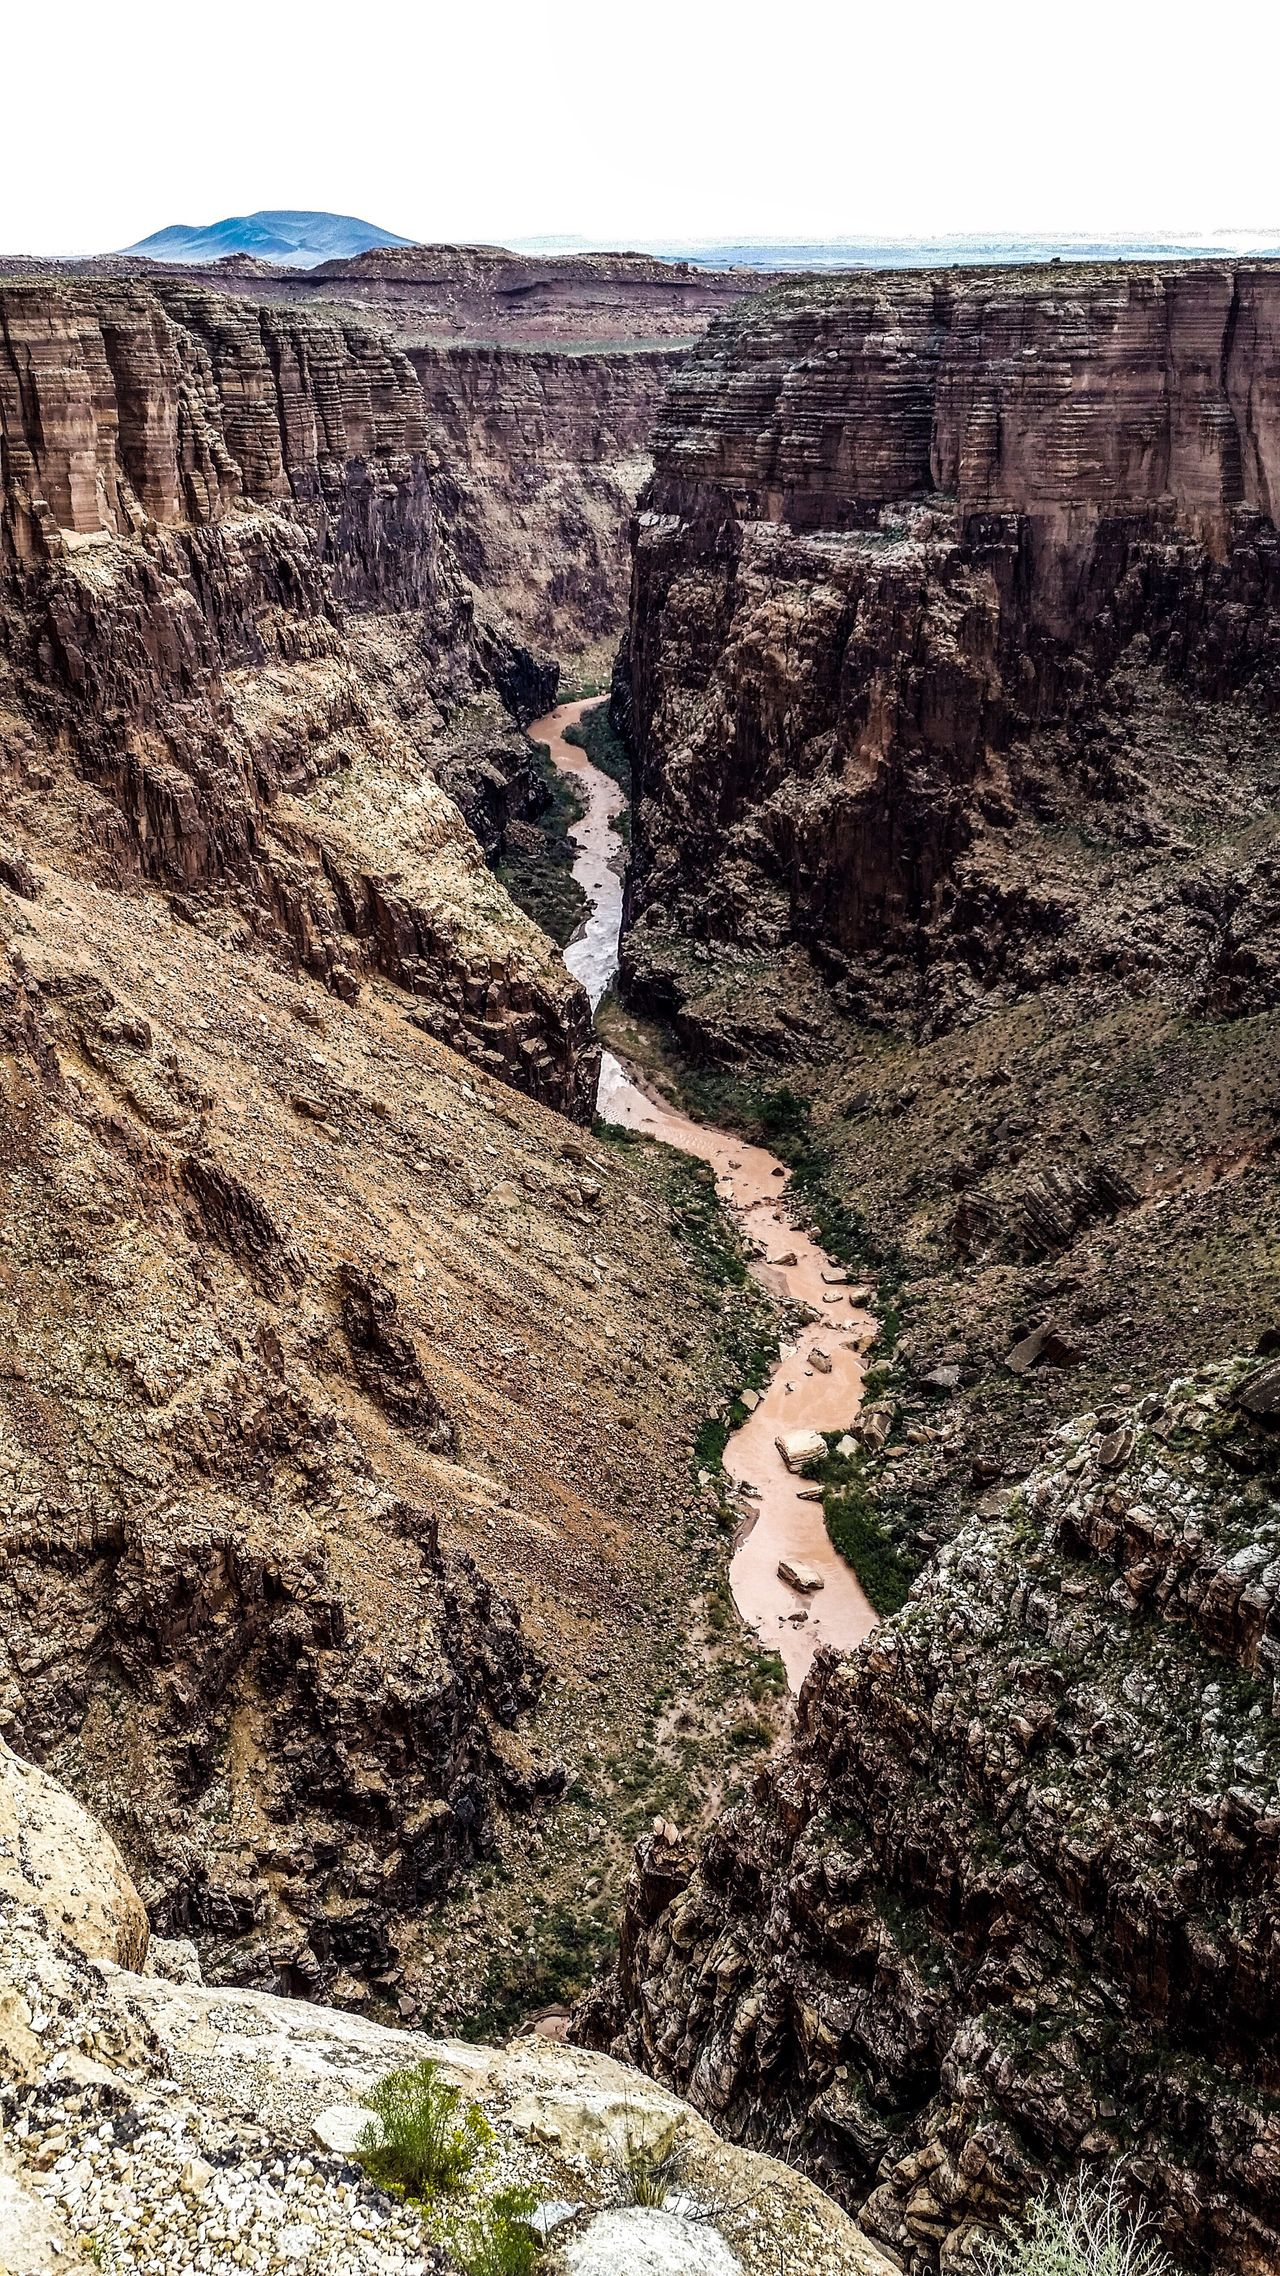 Little Colorado River - A story of erosion Nature Erosion Beauty In Nature Tranquility Scenics Sky Geology Rock - Object Non-urban Scene Physical Geography Tranquil Scene Day Outdoors Landscape Mountain No People Canyon EyeEmNewHere The Great Outdoors - 2017 EyeEm Awards